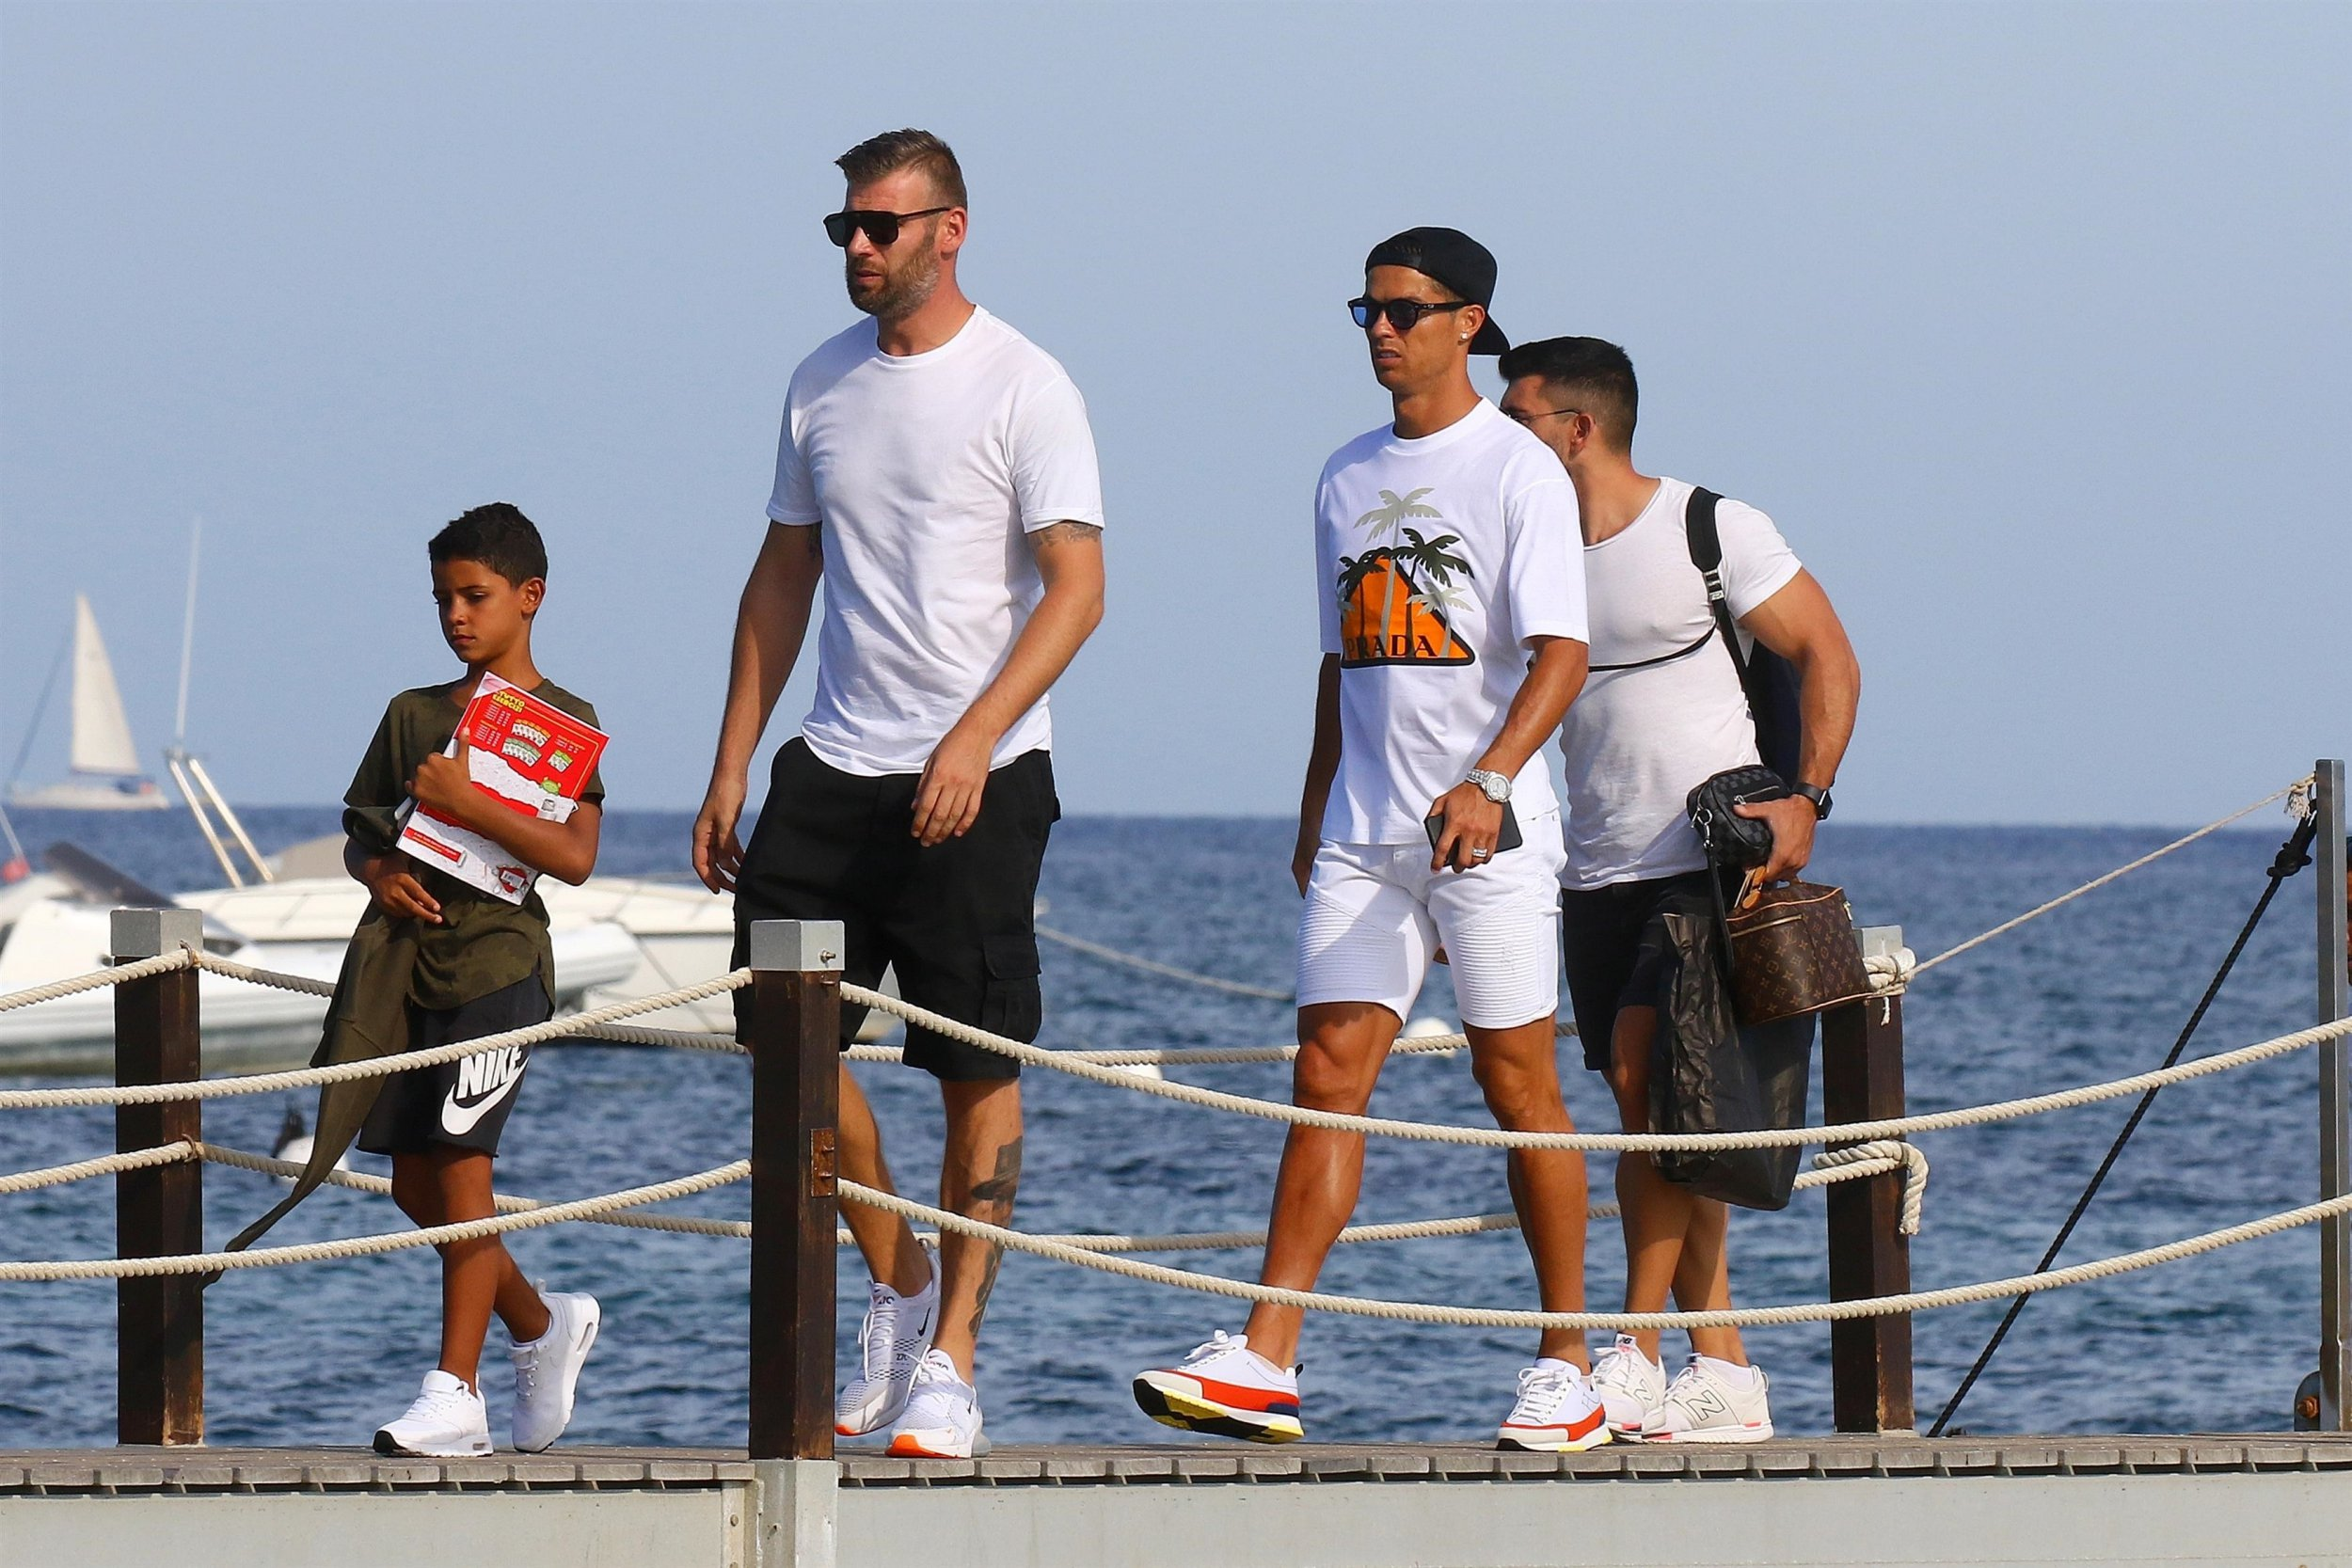 BGUK_1332886 - ** RIGHTS: ONLY UNITED KINGDOM ** Saint Tropez, FRANCE - Portuguese professional footballer Cristiano Ronaldo pictured on holiday in St Tropez, France with his son and girlfriend Georgina Rodriguez. Cristiano wore a white Prada graphic t-shirt with white shorts, white trainers, baseball cap and sunglasses. Georgina wore a leopard print dress with sandals. Pictured: Cristiano Ronaldo BACKGRID UK 10 SEPTEMBER 2018 UK: +44 208 344 2007 / uksales@backgrid.com USA: +1 310 798 9111 / usasales@backgrid.com *UK Clients - Pictures Containing Children Please Pixelate Face Prior To Publication*